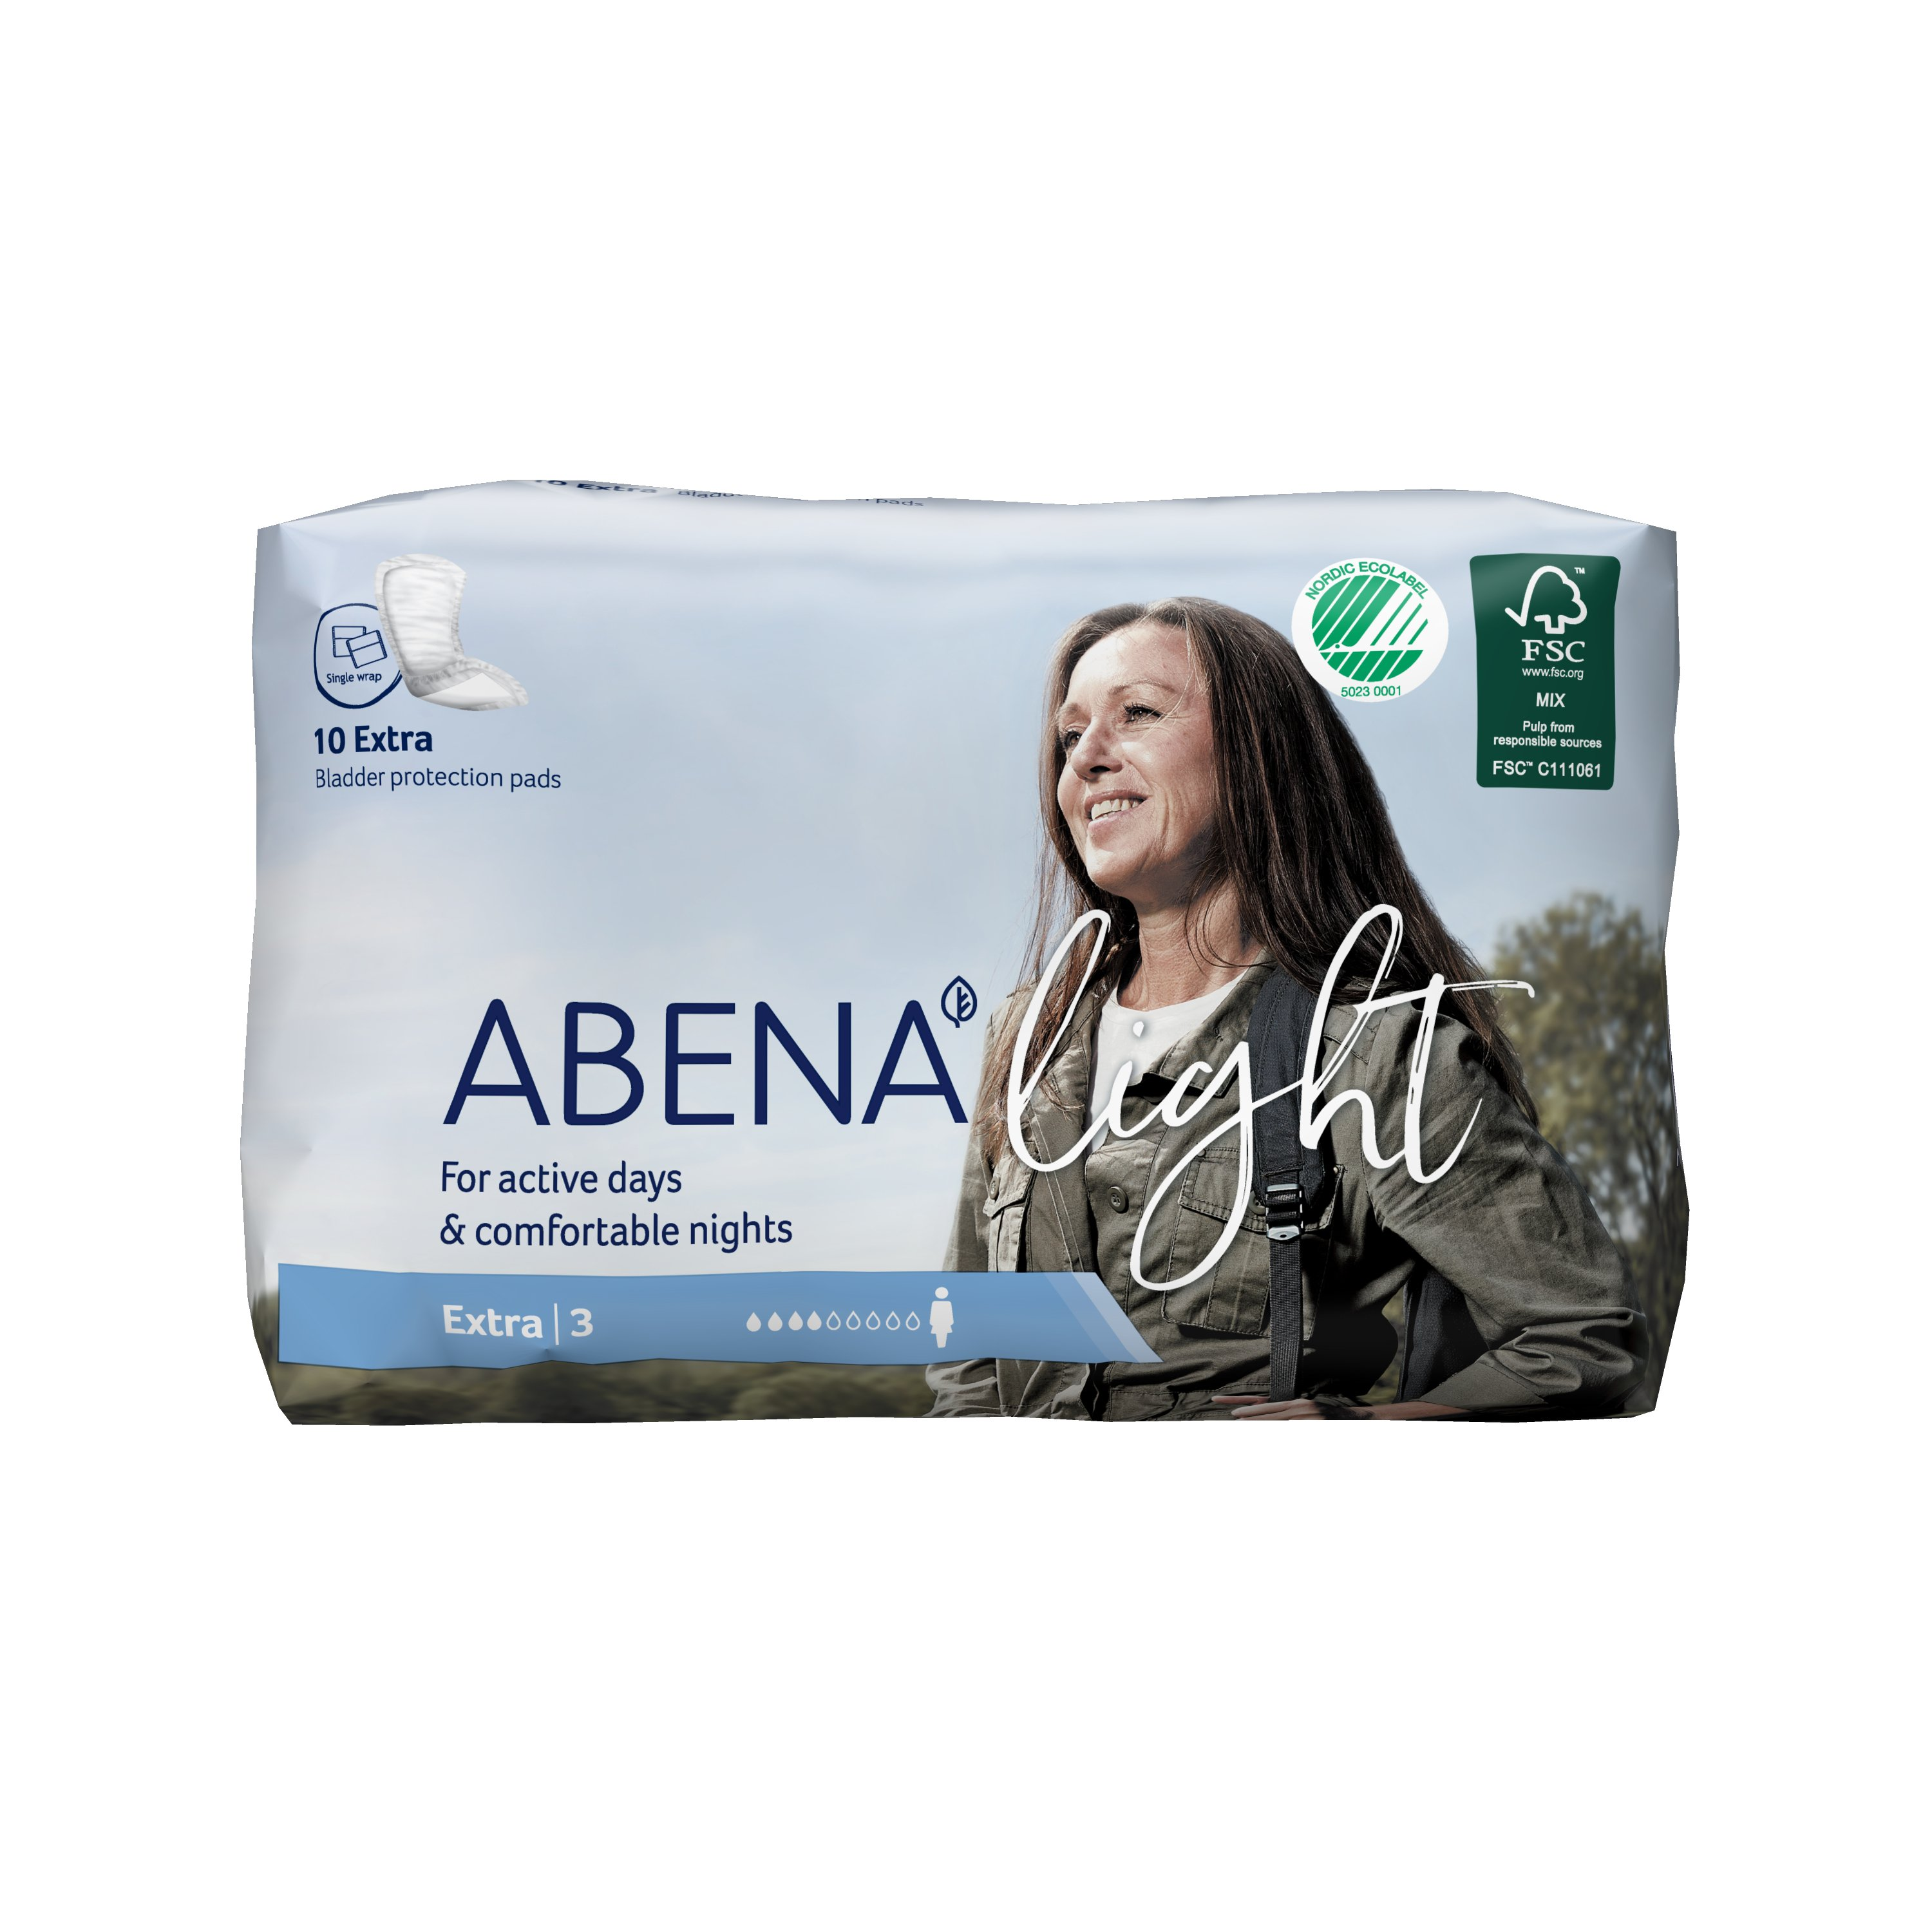 Abena Light Extra Disposable Unisex Adult Bladder Control Pad, Moderate Absorbency, 1000017158, One Size Fits Most - Bag of 10